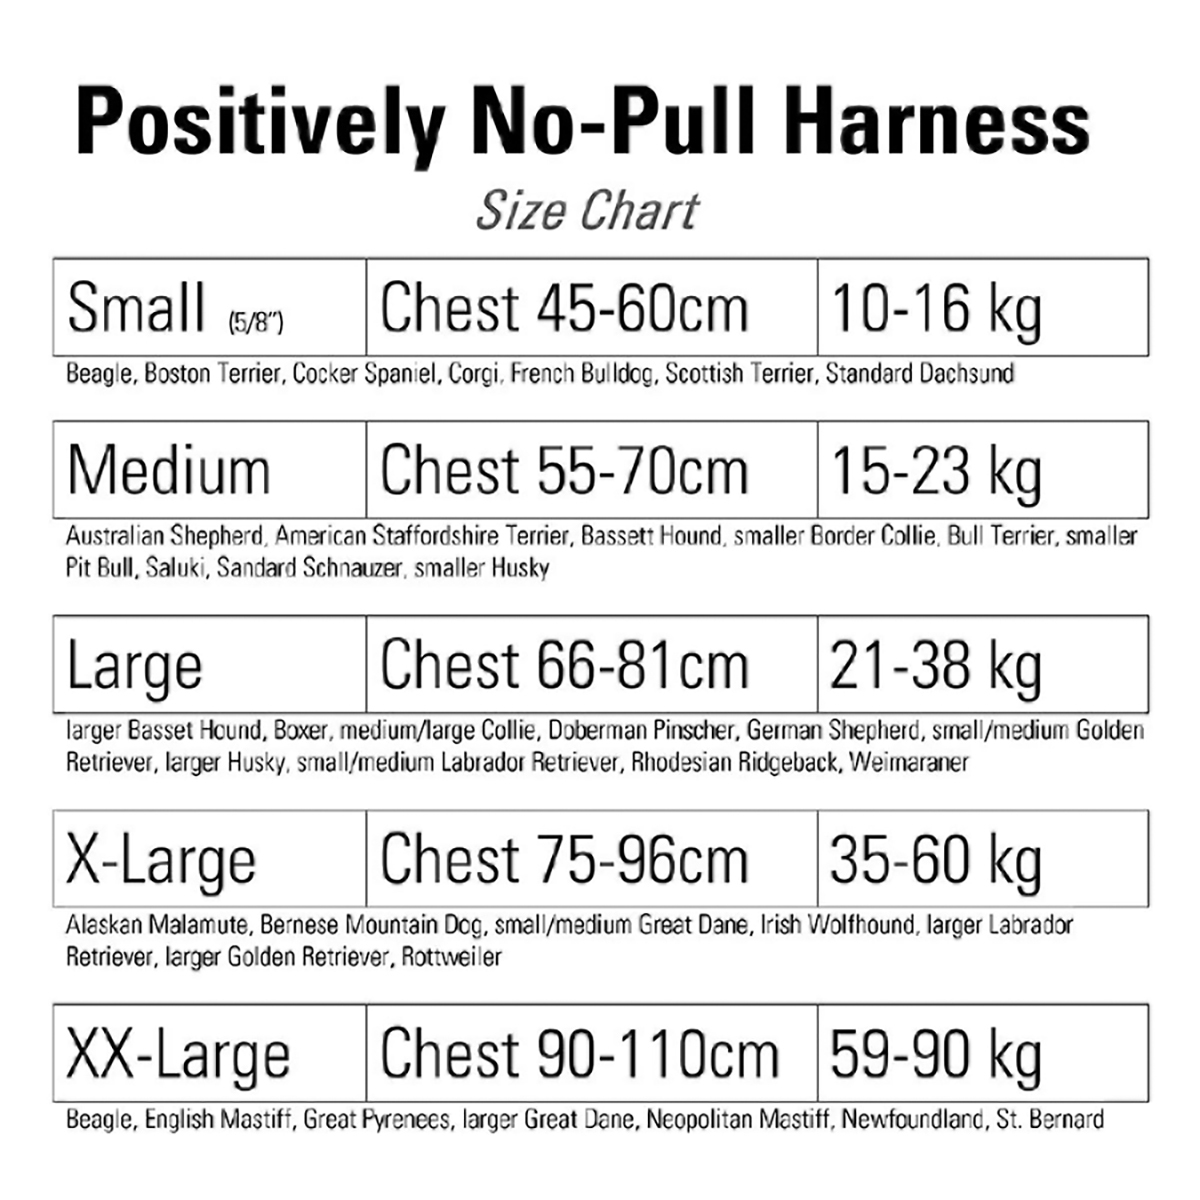 Positively No-Pull Harness